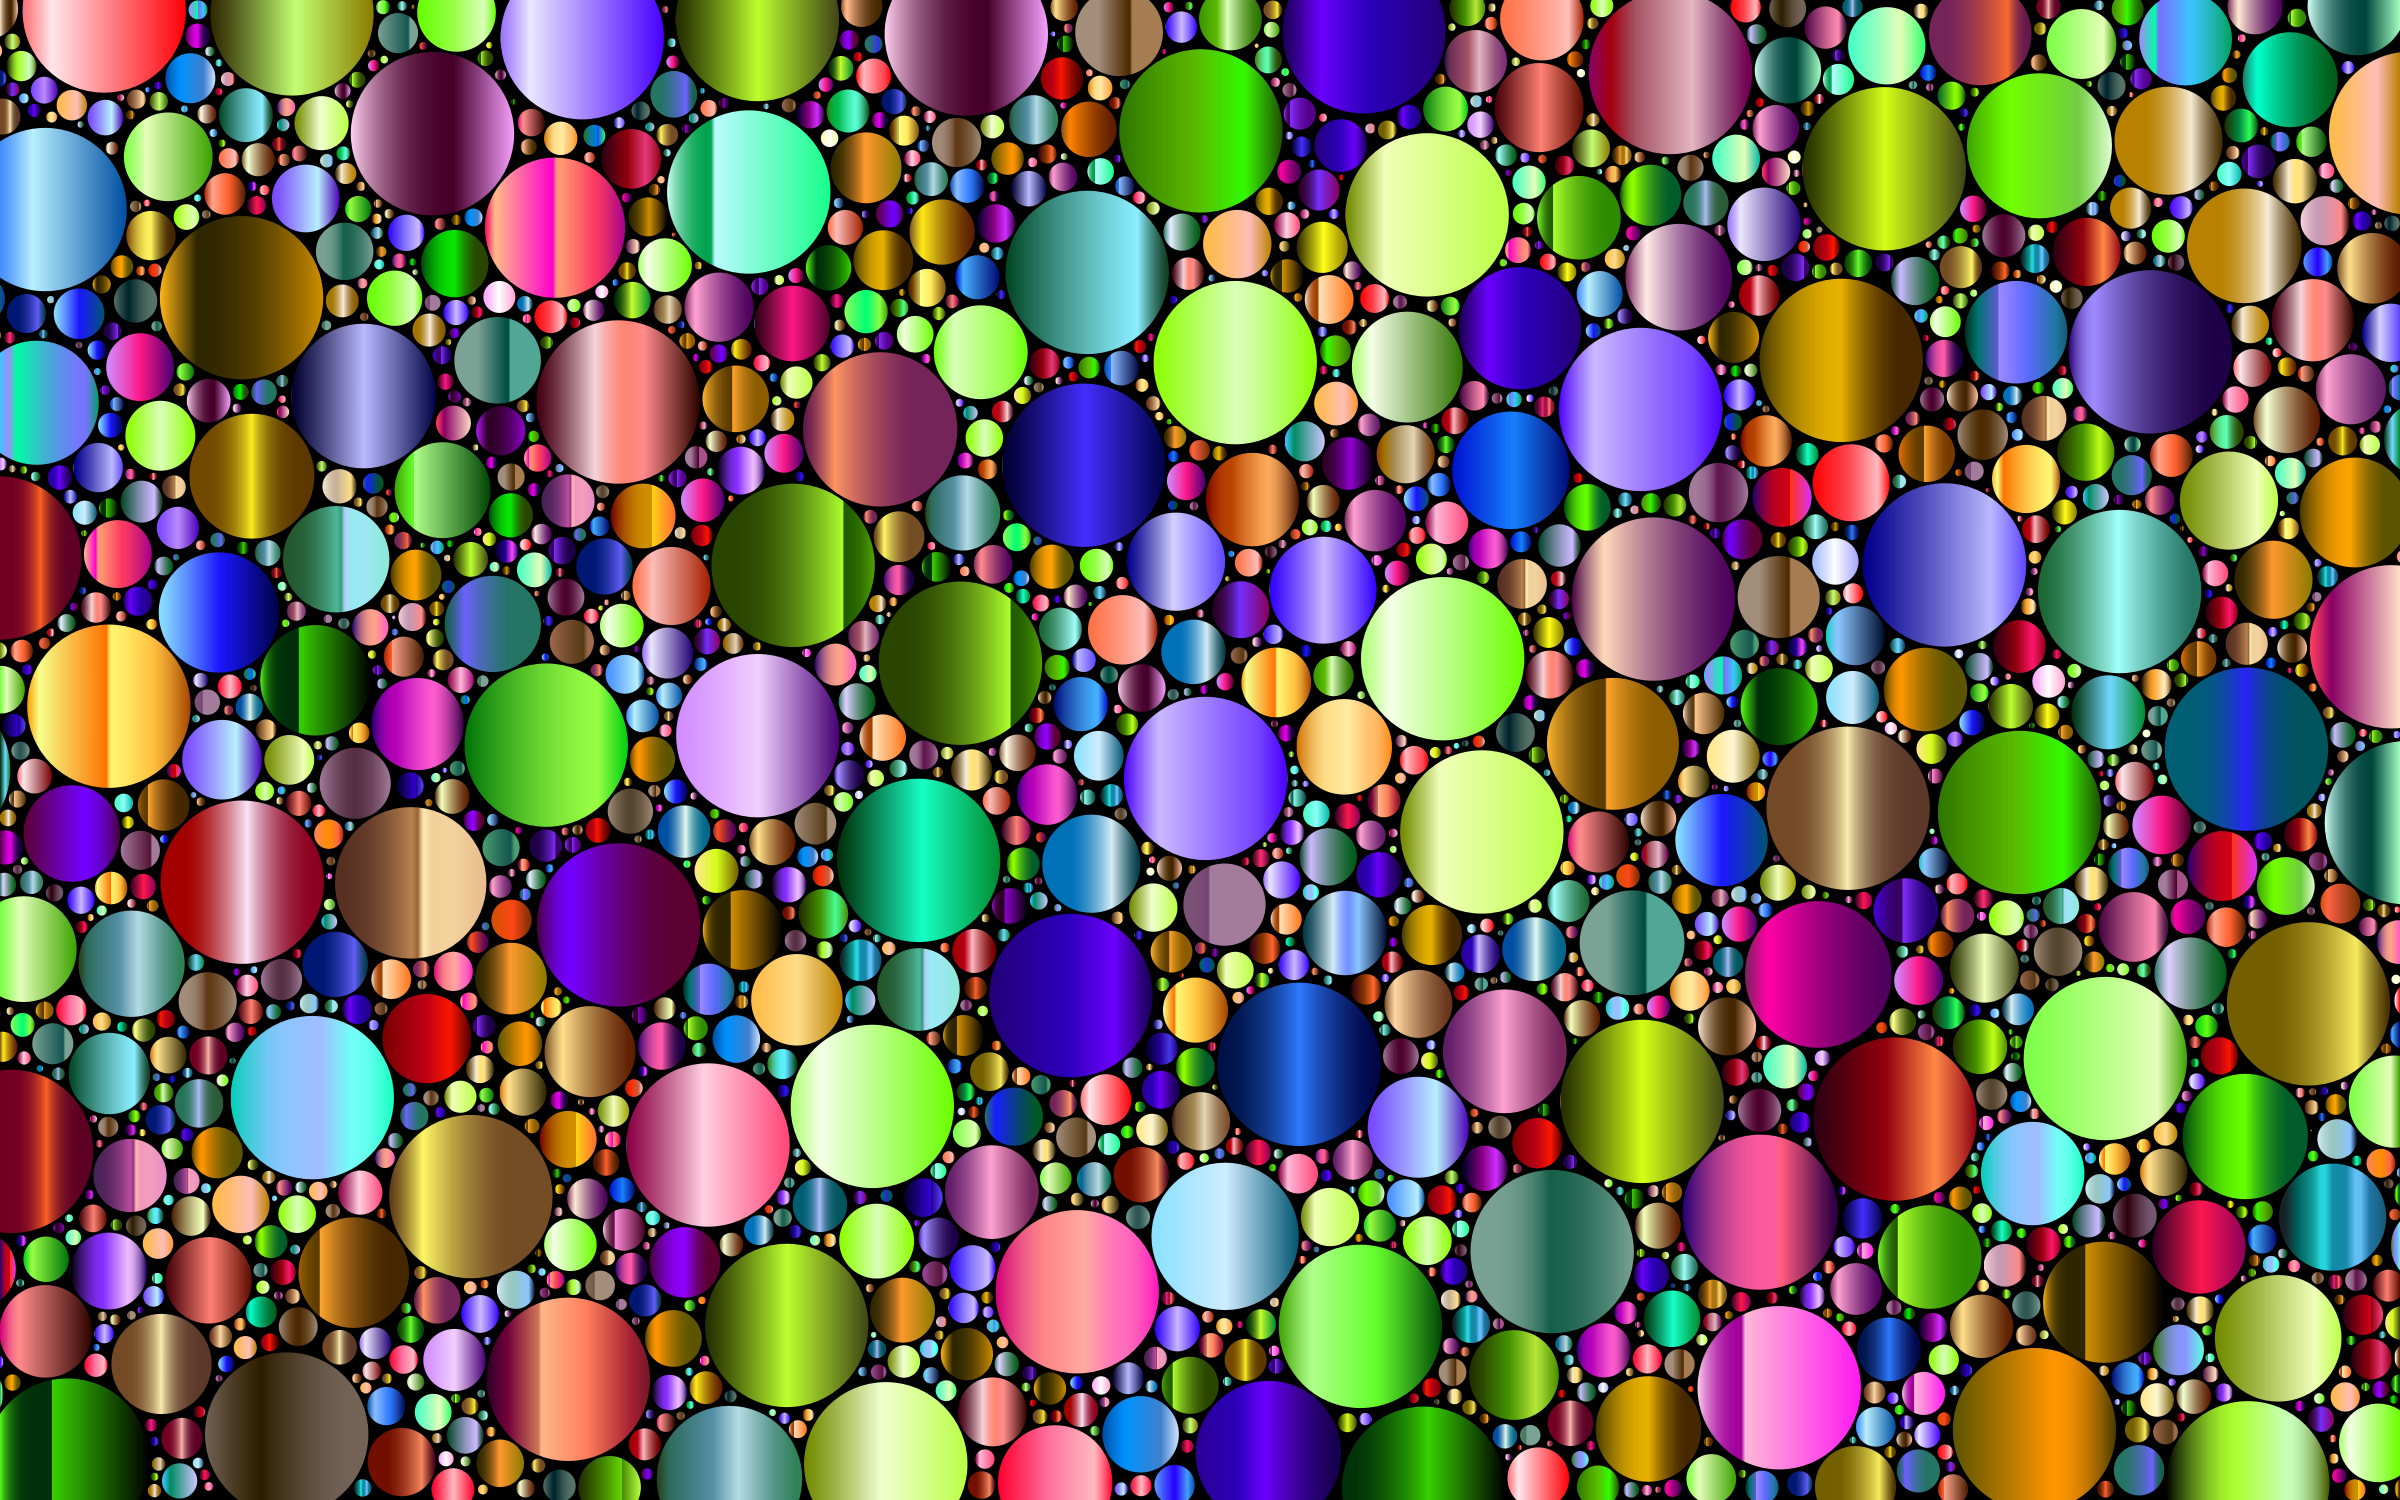 Prismatic Packed Circles 8 by GDJ